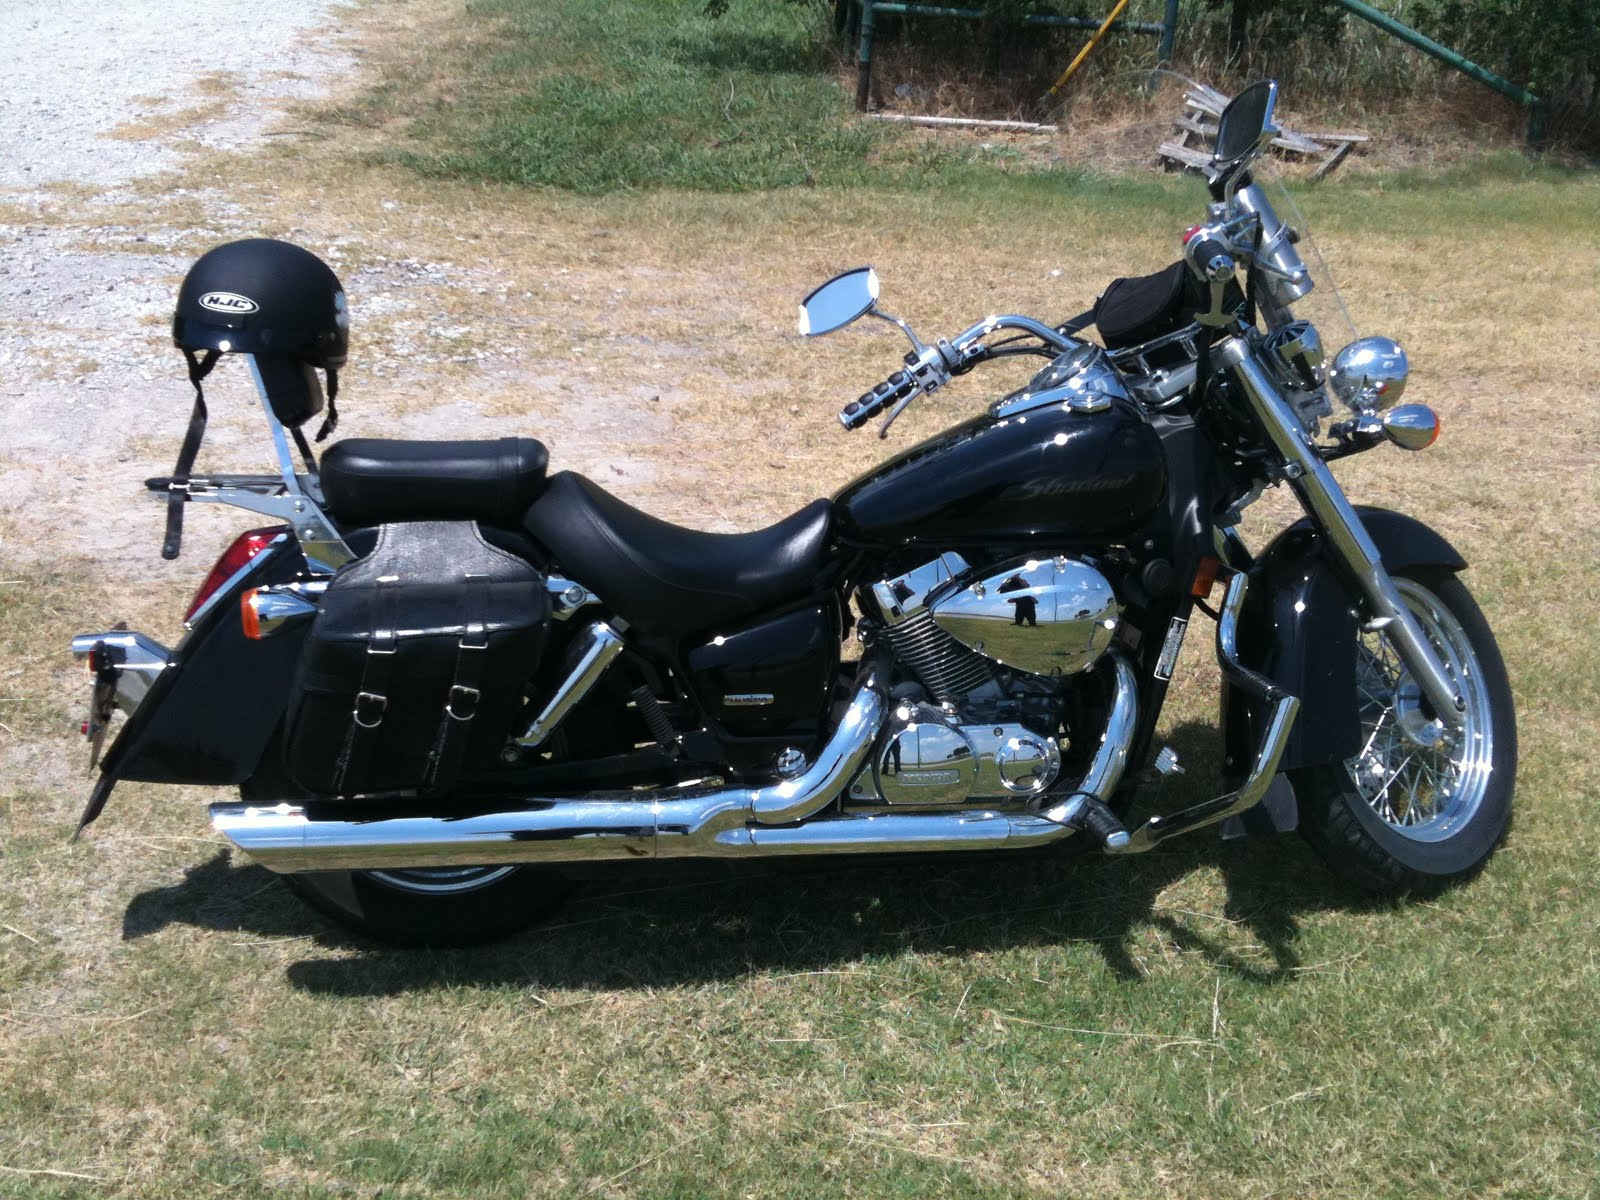 Service manuals are here for download honda shadow forums service manuals are here for download honda shadow forums shadow motorcycle forum fandeluxe